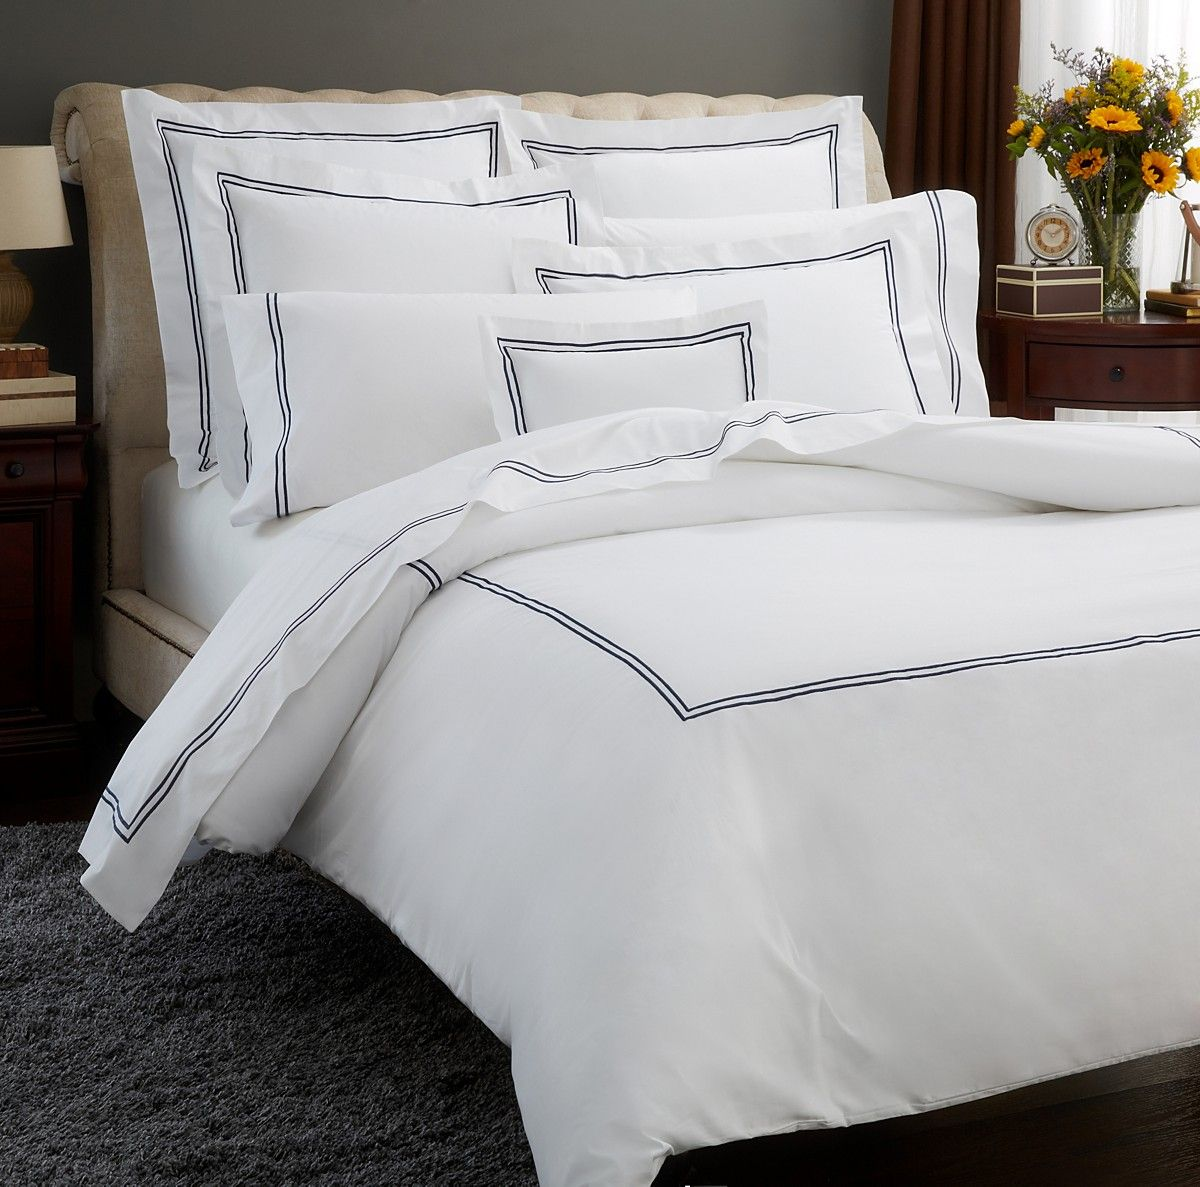 Kamash offers high quality luxury hotel bed linens that for Hotel sheets and towels